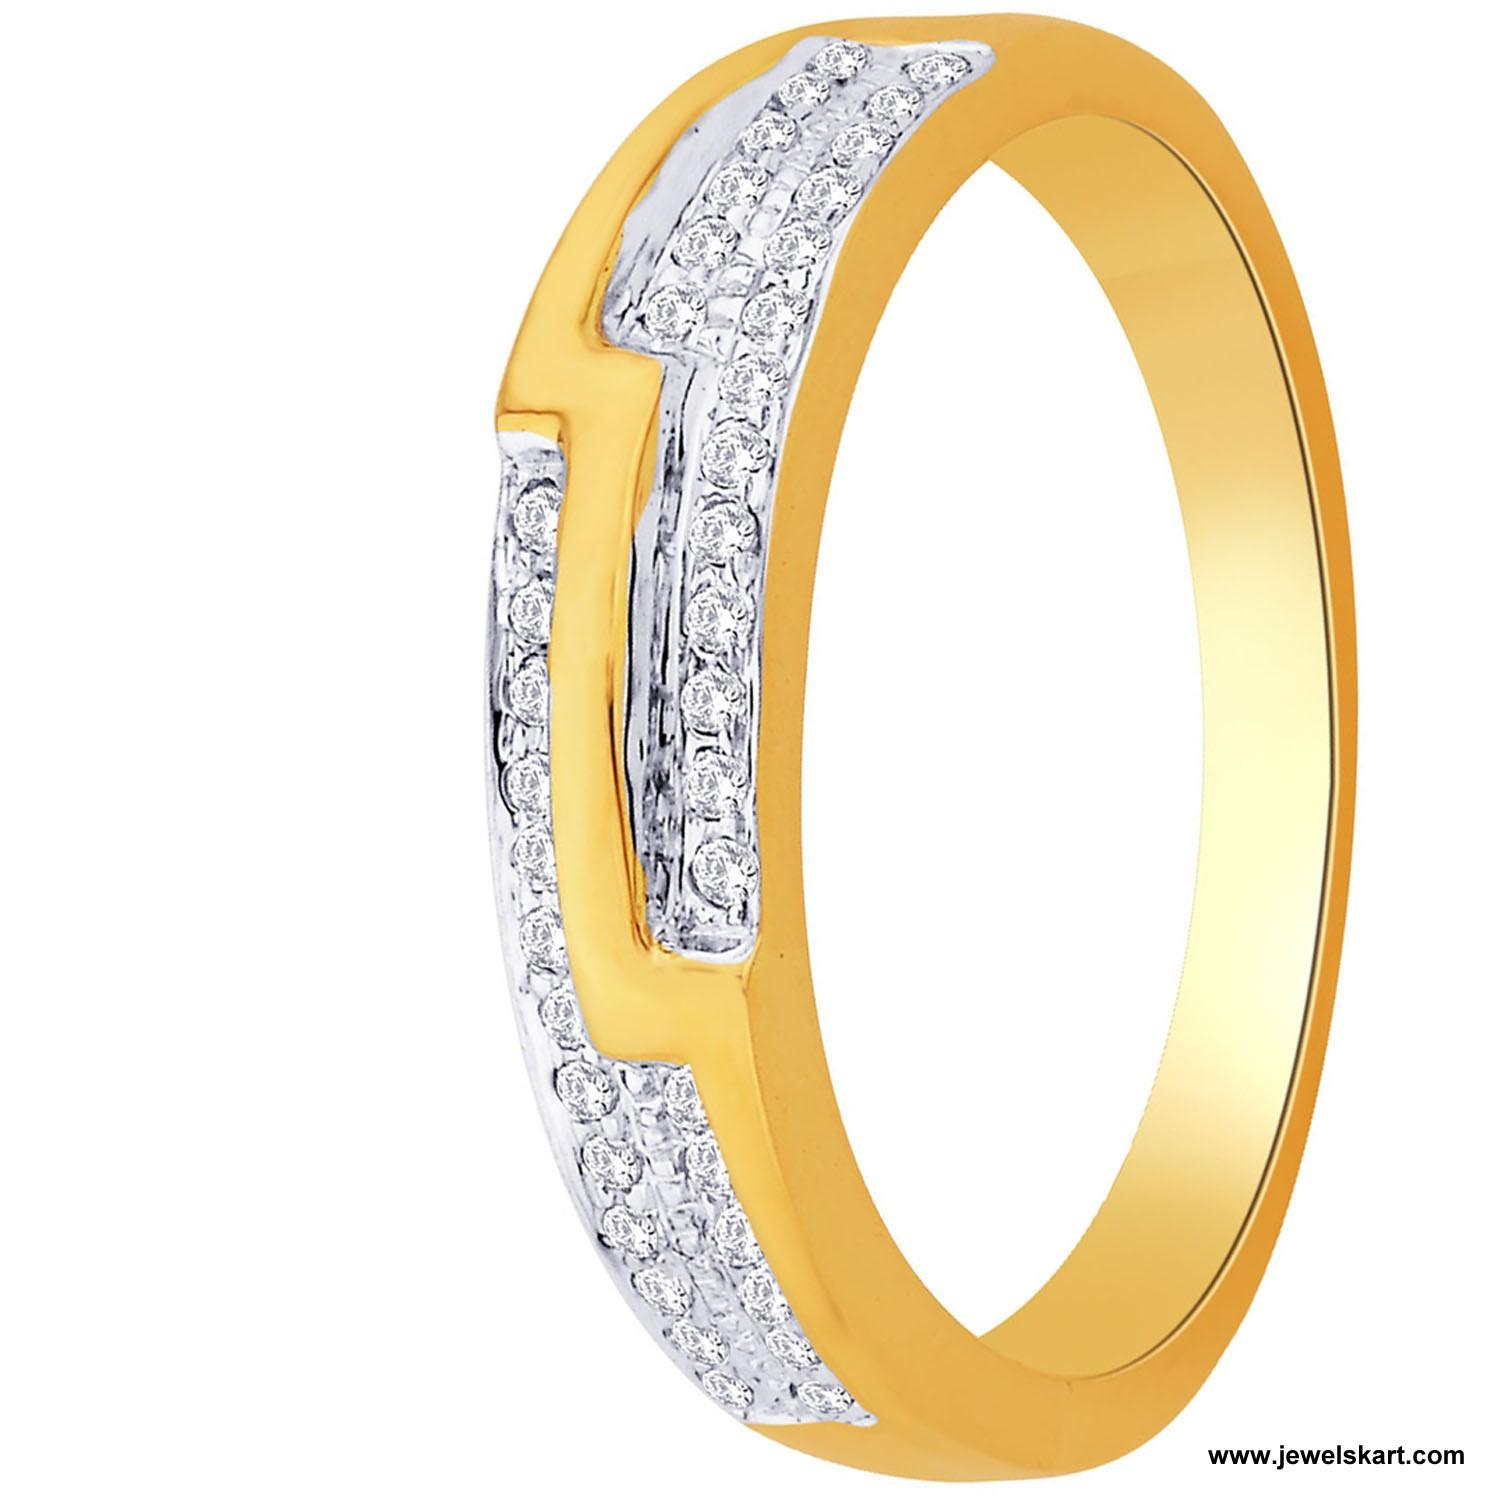 Sangini IDR00249 Gold, 4.68 gm, 0.18 ct, Diamond, Ladies Ring